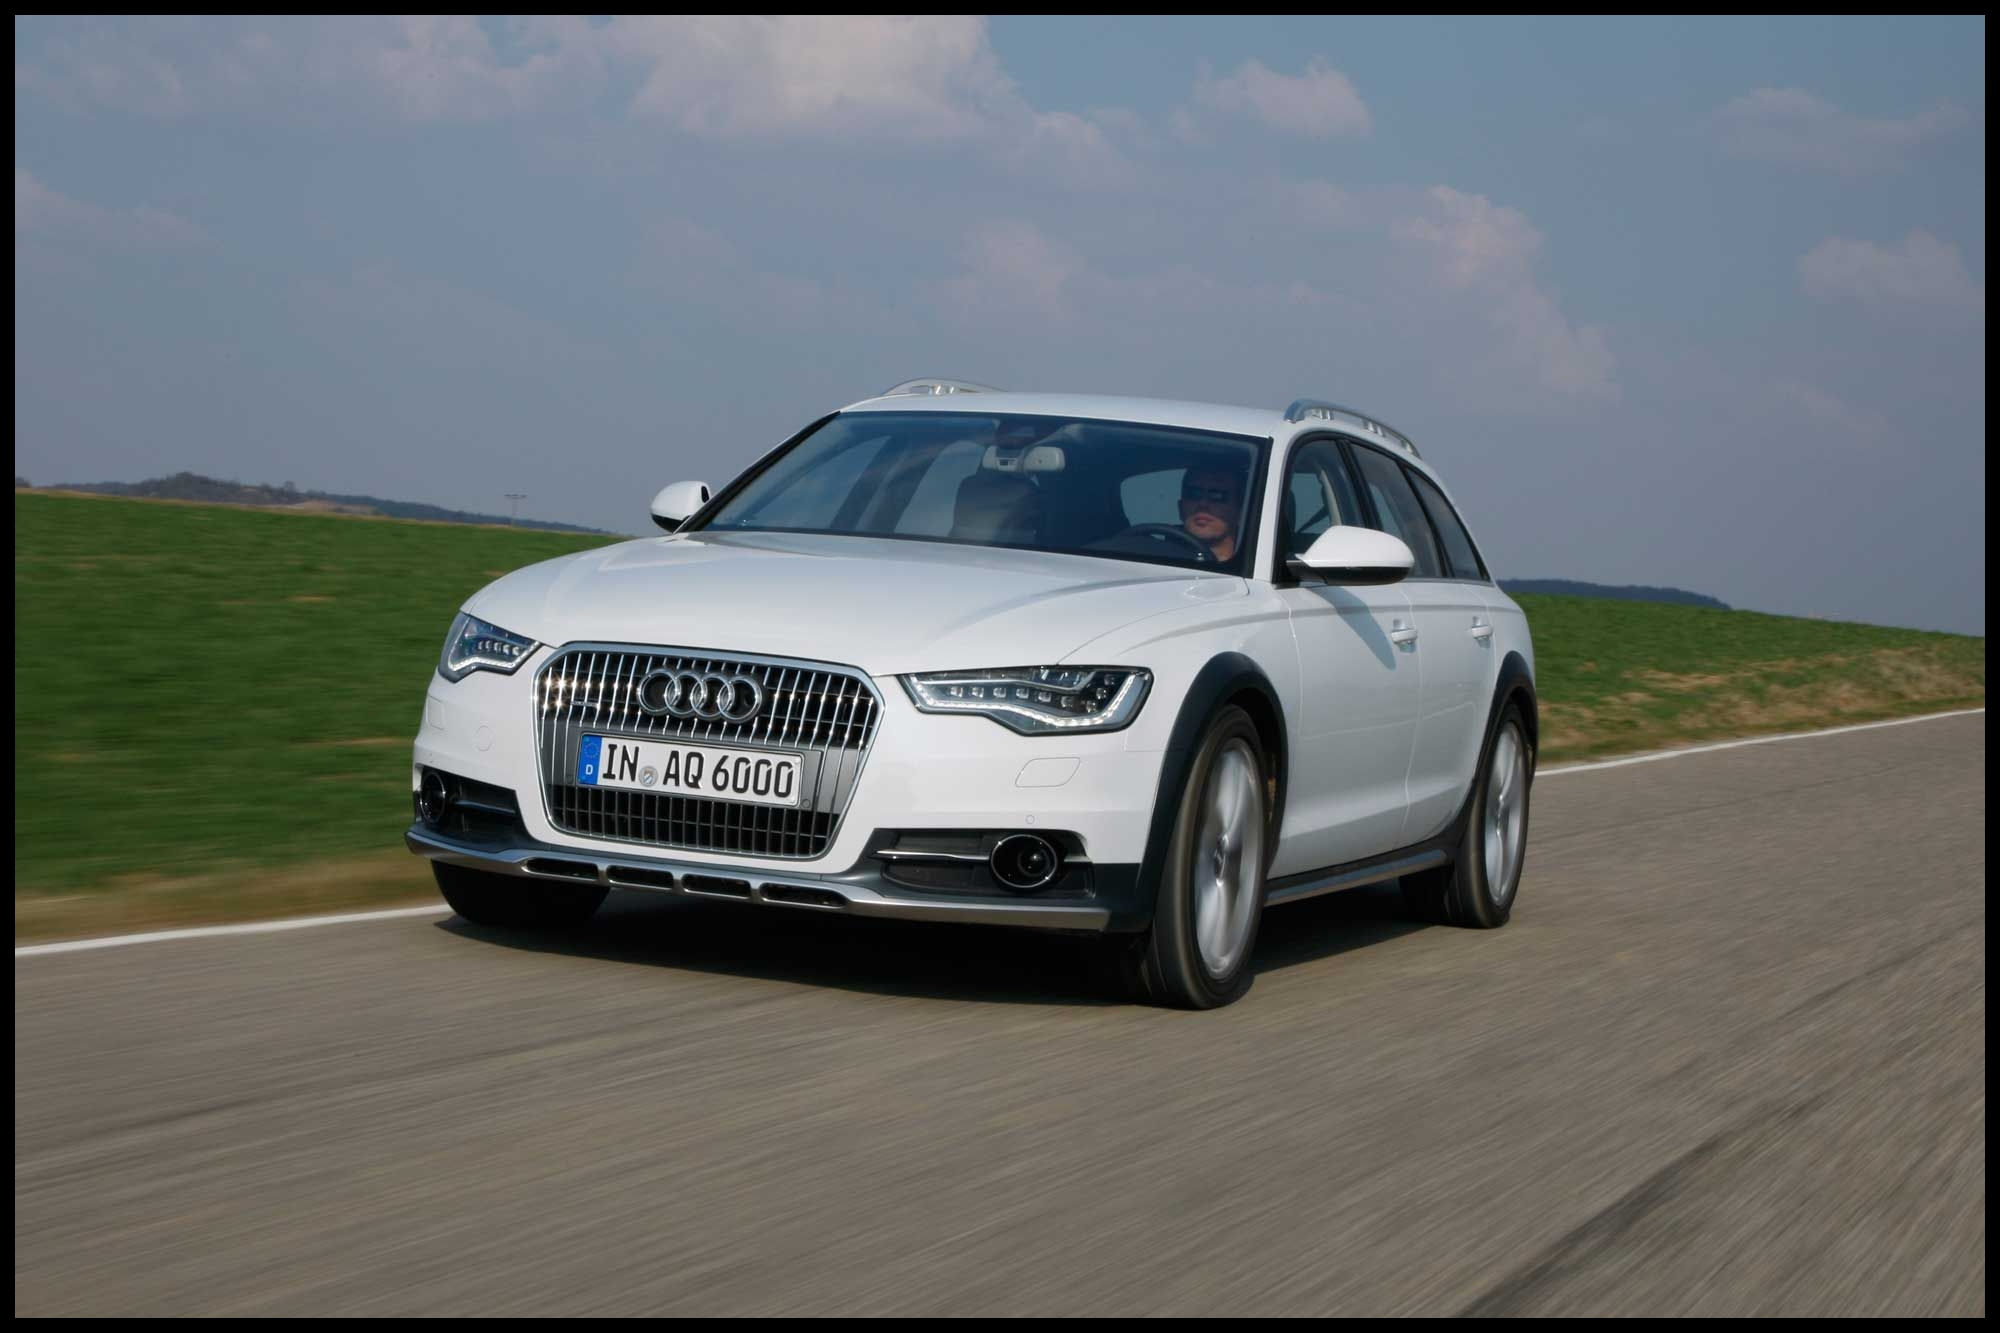 Are Audis Expensive to Fix New 2013 Audi A6 Allroad Estate White Car Driving